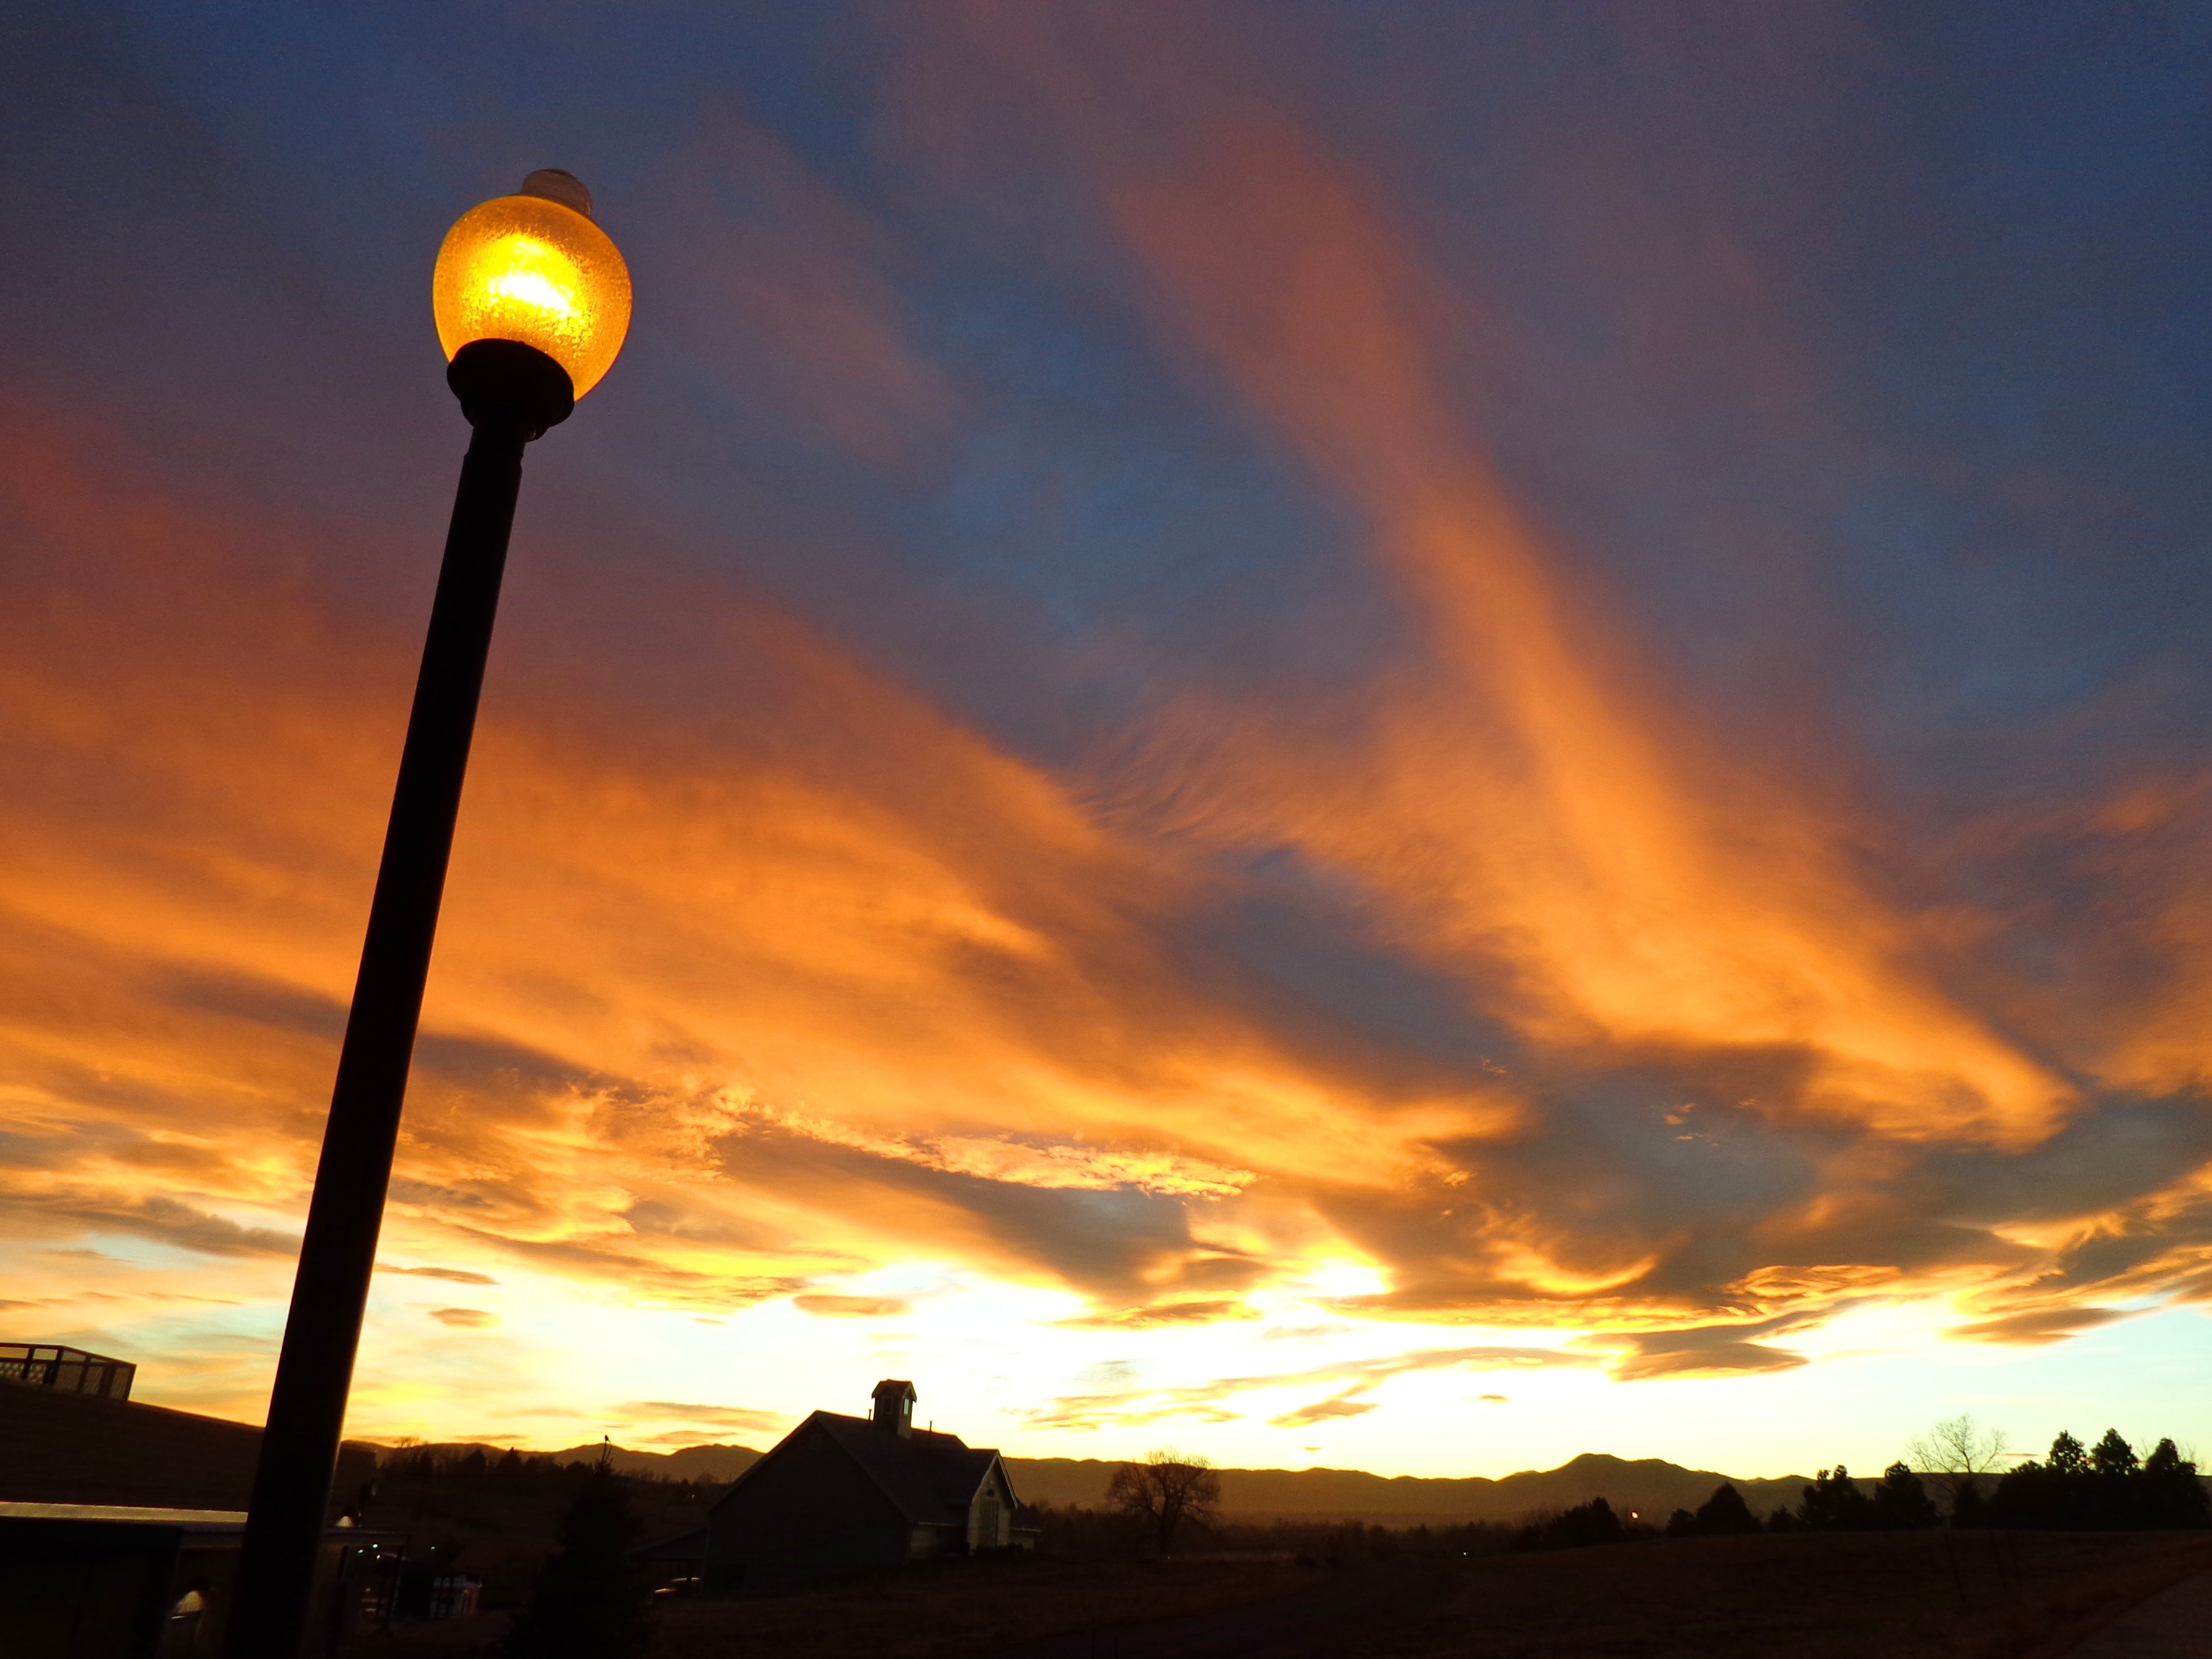 Sunset With Lamp Post In Foreground Picture Free